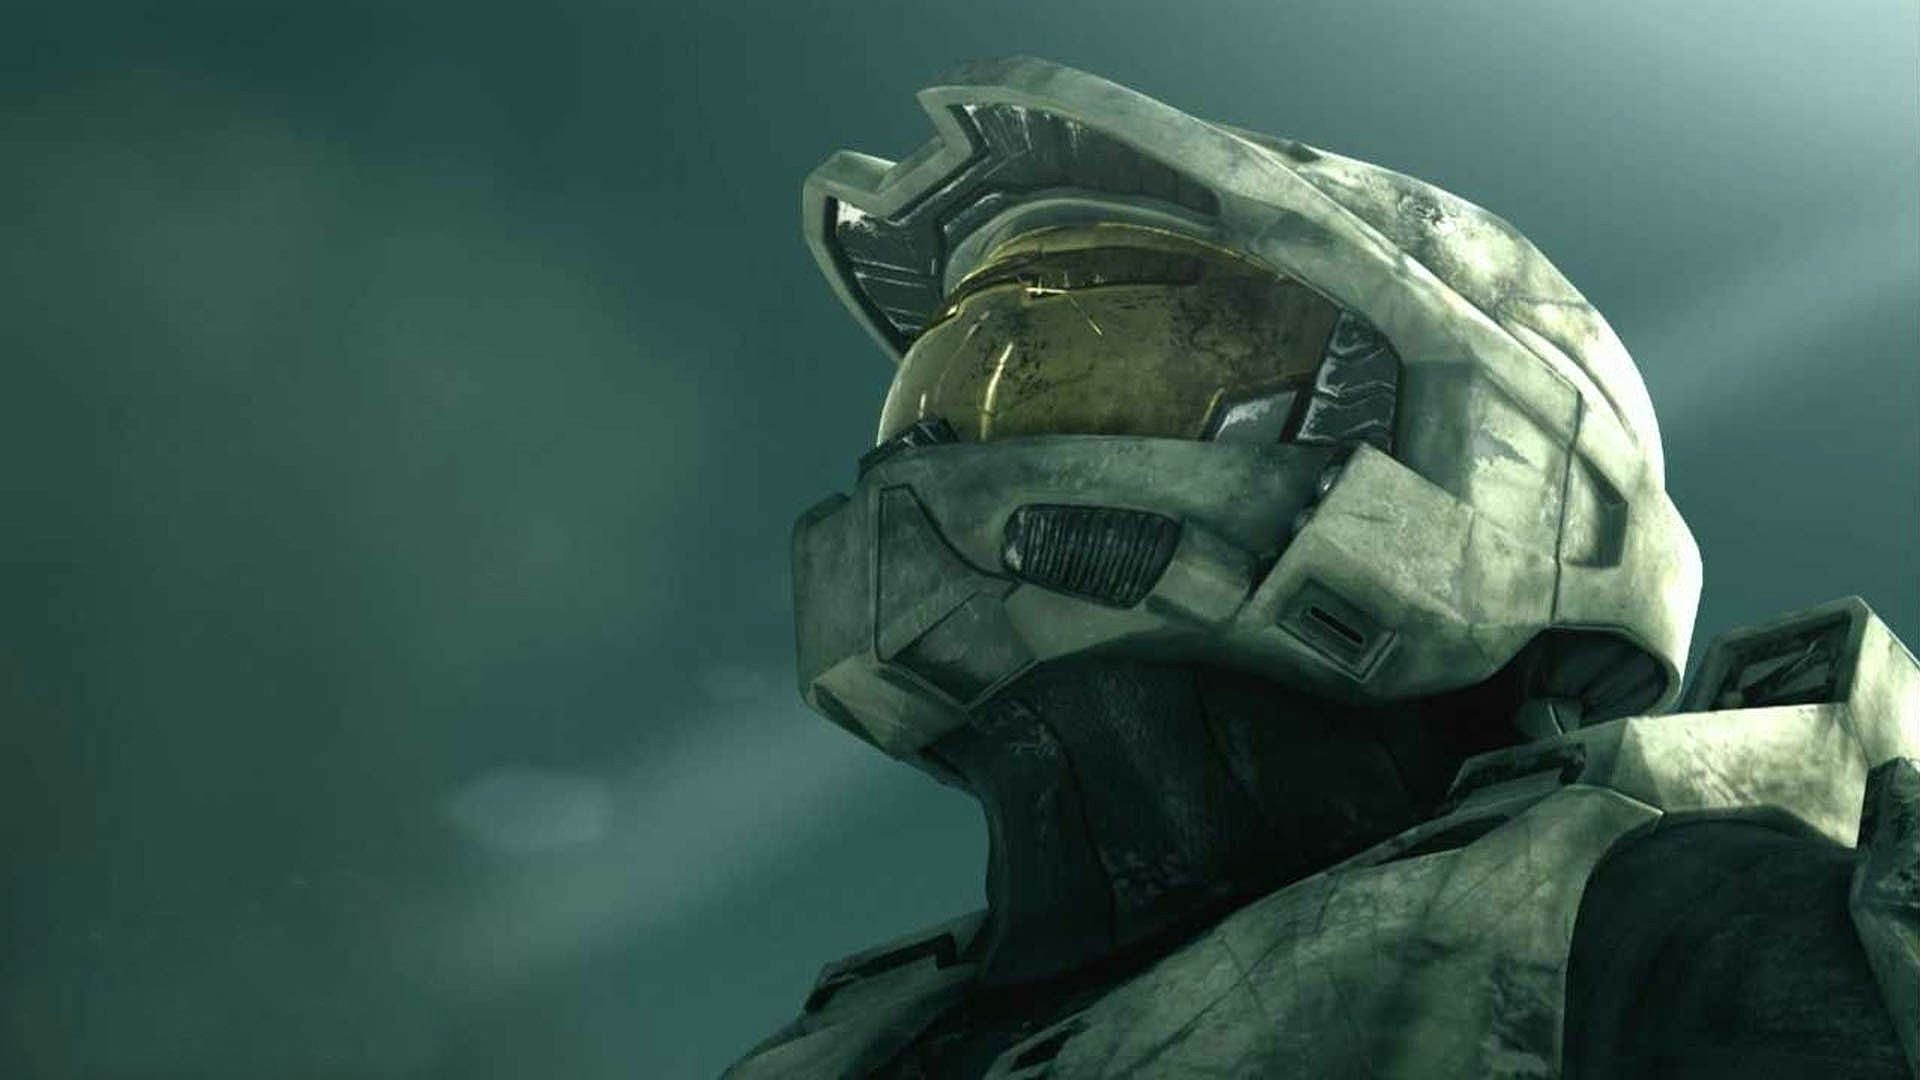 Scifi Macbook Shooter Halo Free Wallpapers Cyborg